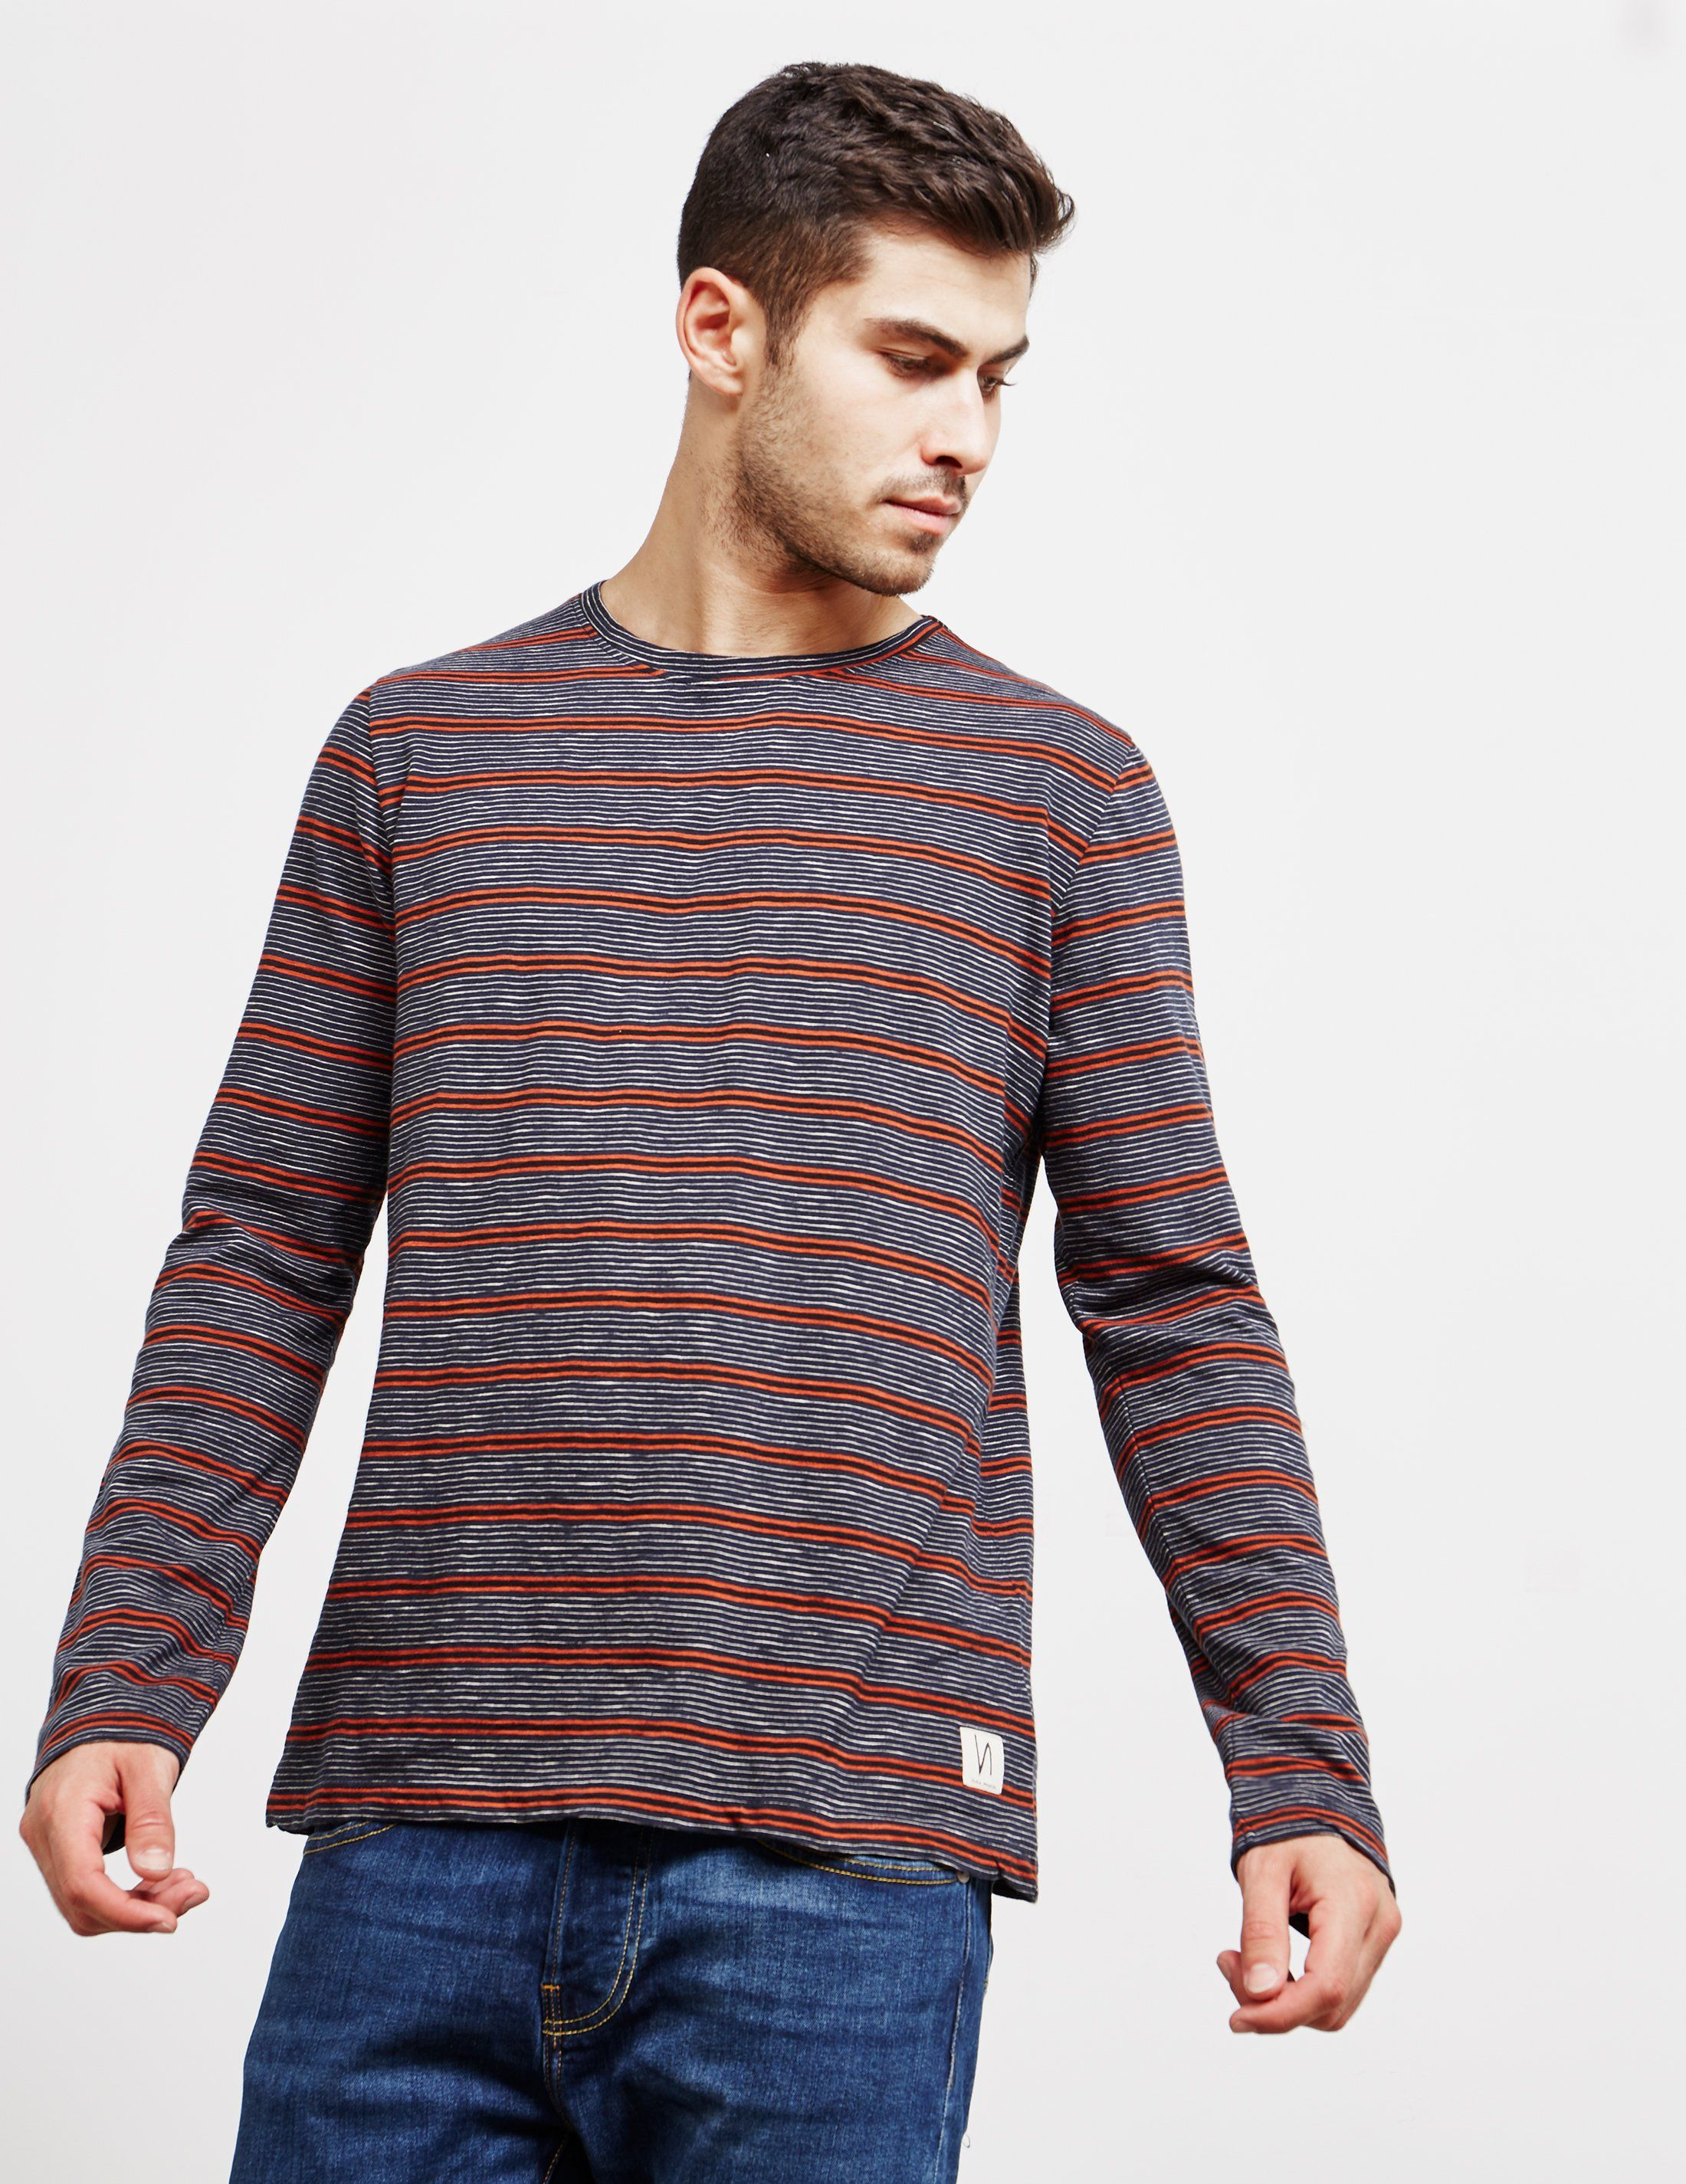 Nudie Jeans Mix Stripe Long Sleeve T-Shirt - Online Exclusive